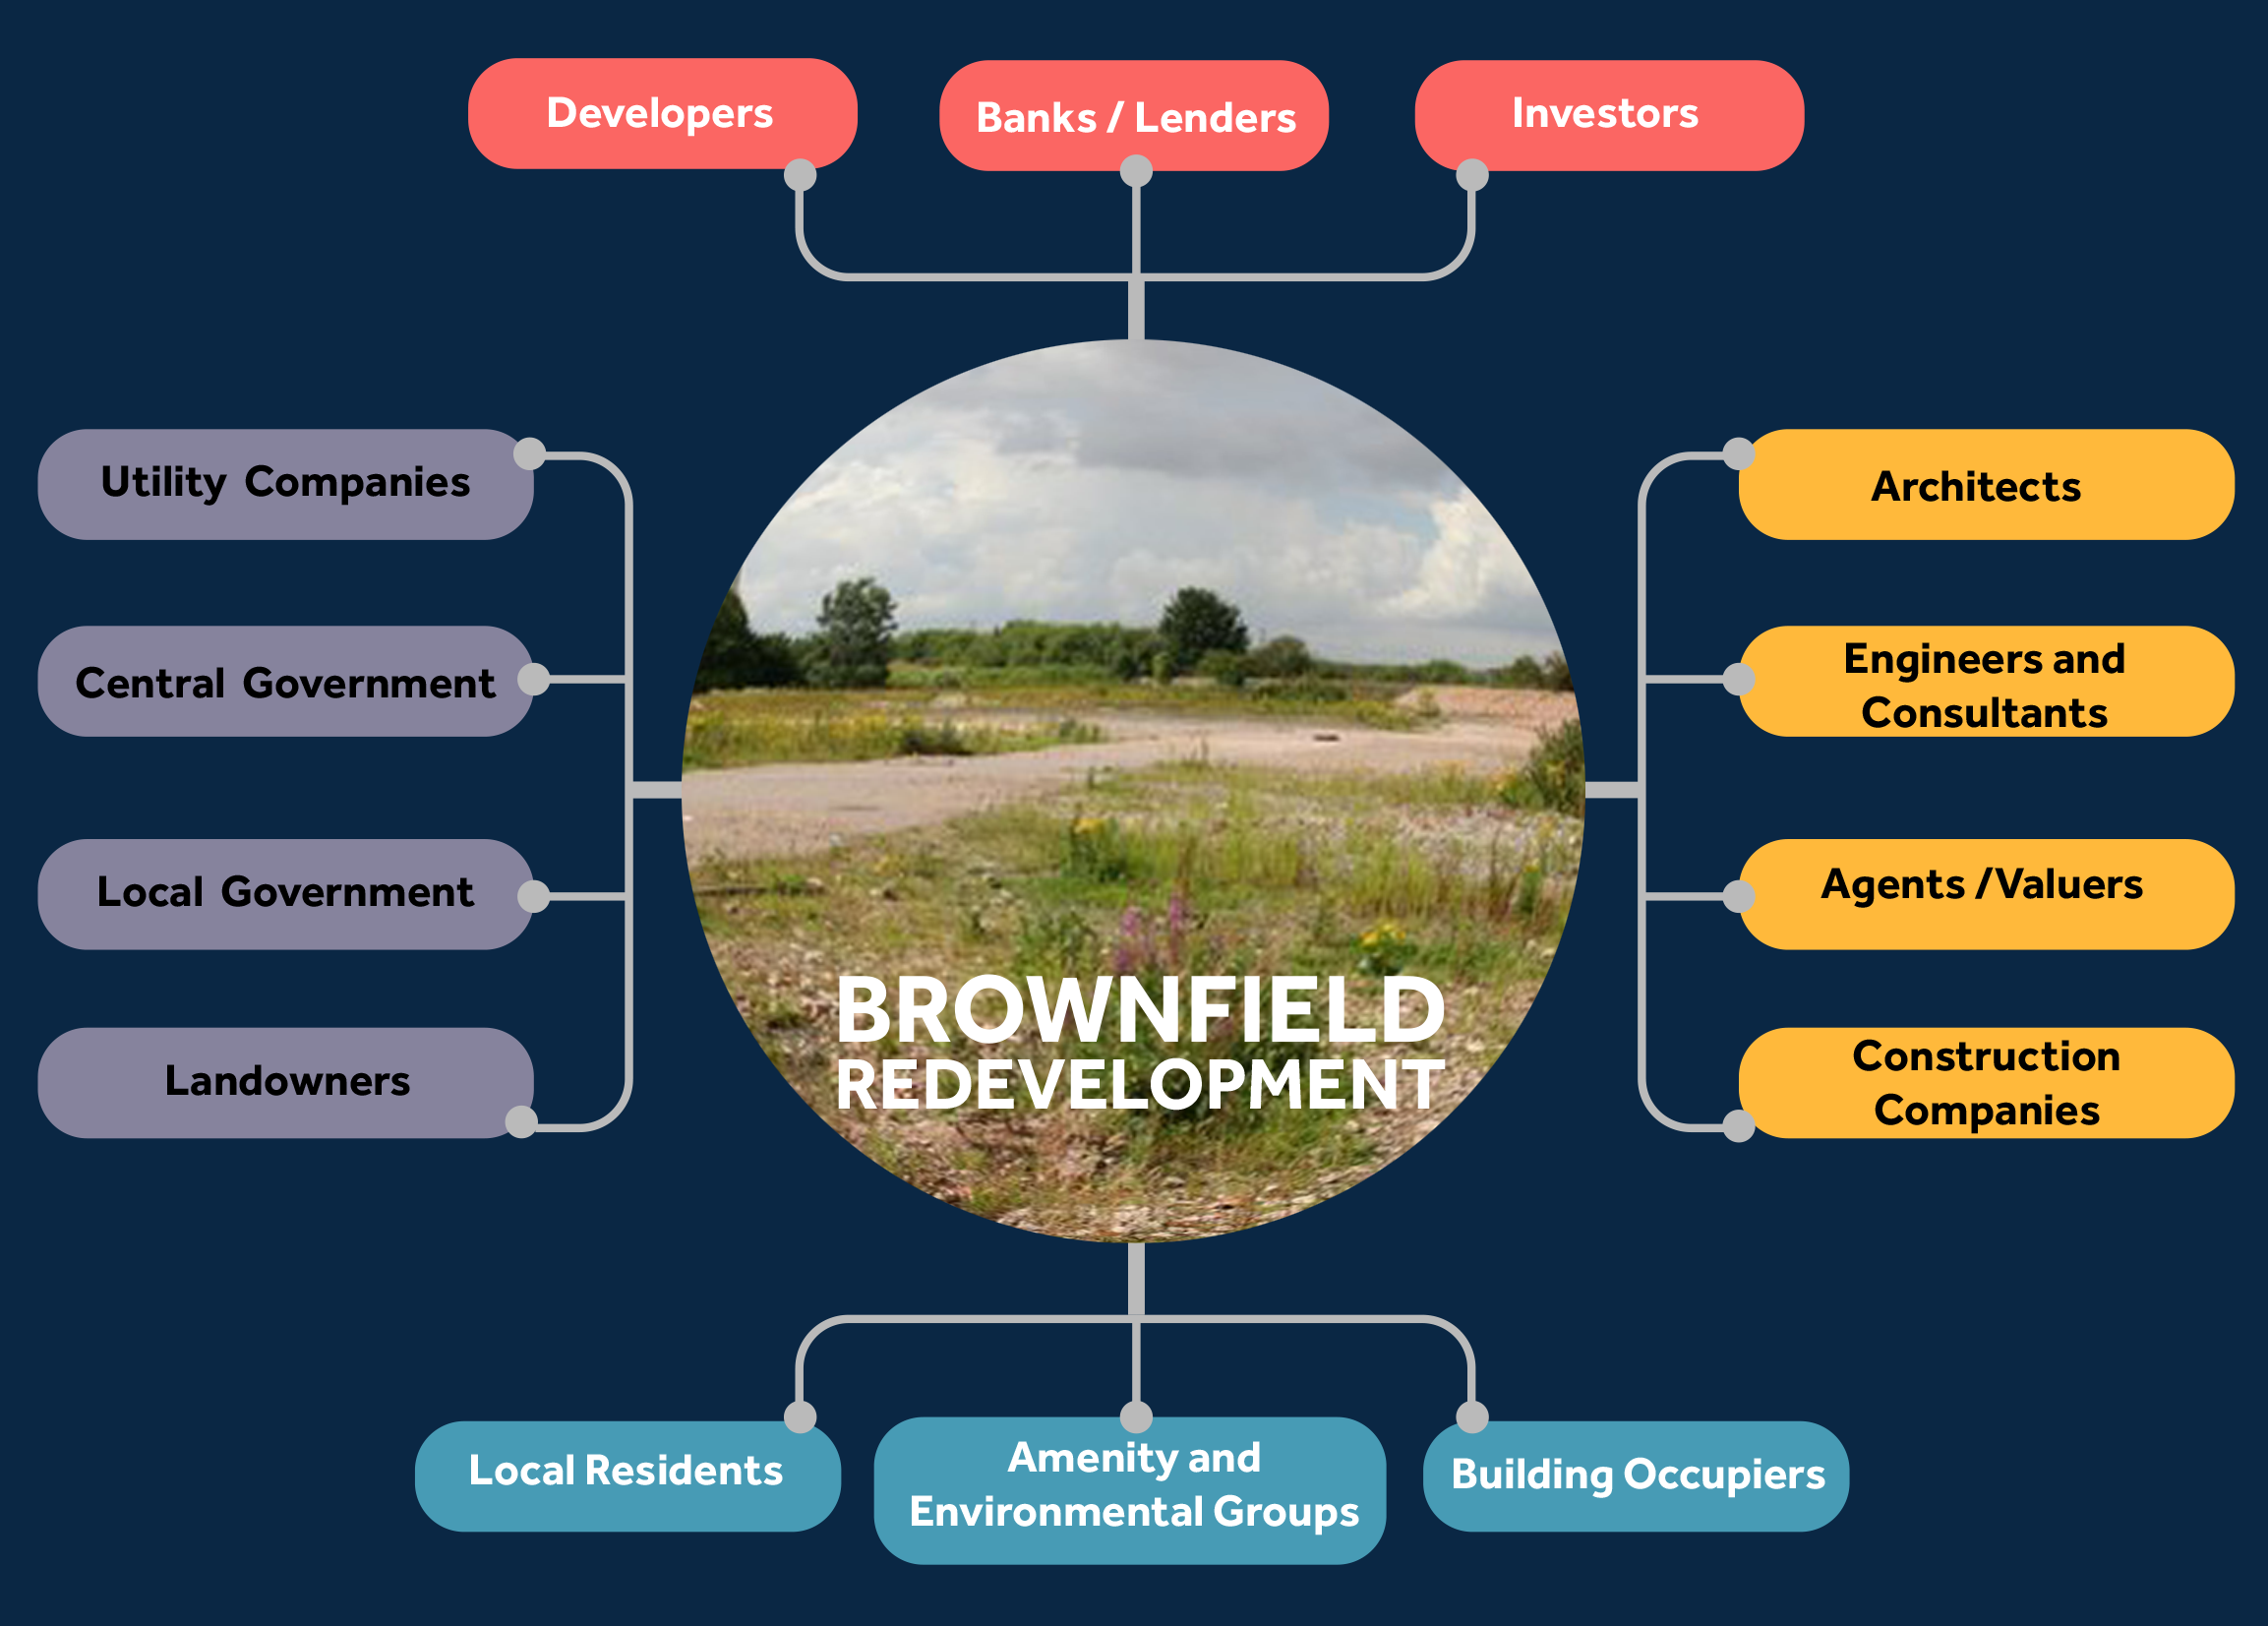 A diagram with a photo of a brownfield development in the middle and the following words surrounding the photo: in red- developers, banks/lenders and investors. In yellow: Architects, engineers and consultants, agents/valuers, and construction companies. In blue: Local residents, amenity and environmental groups, and building occupiers. In purple: Utility companies, central government, local government and landowners